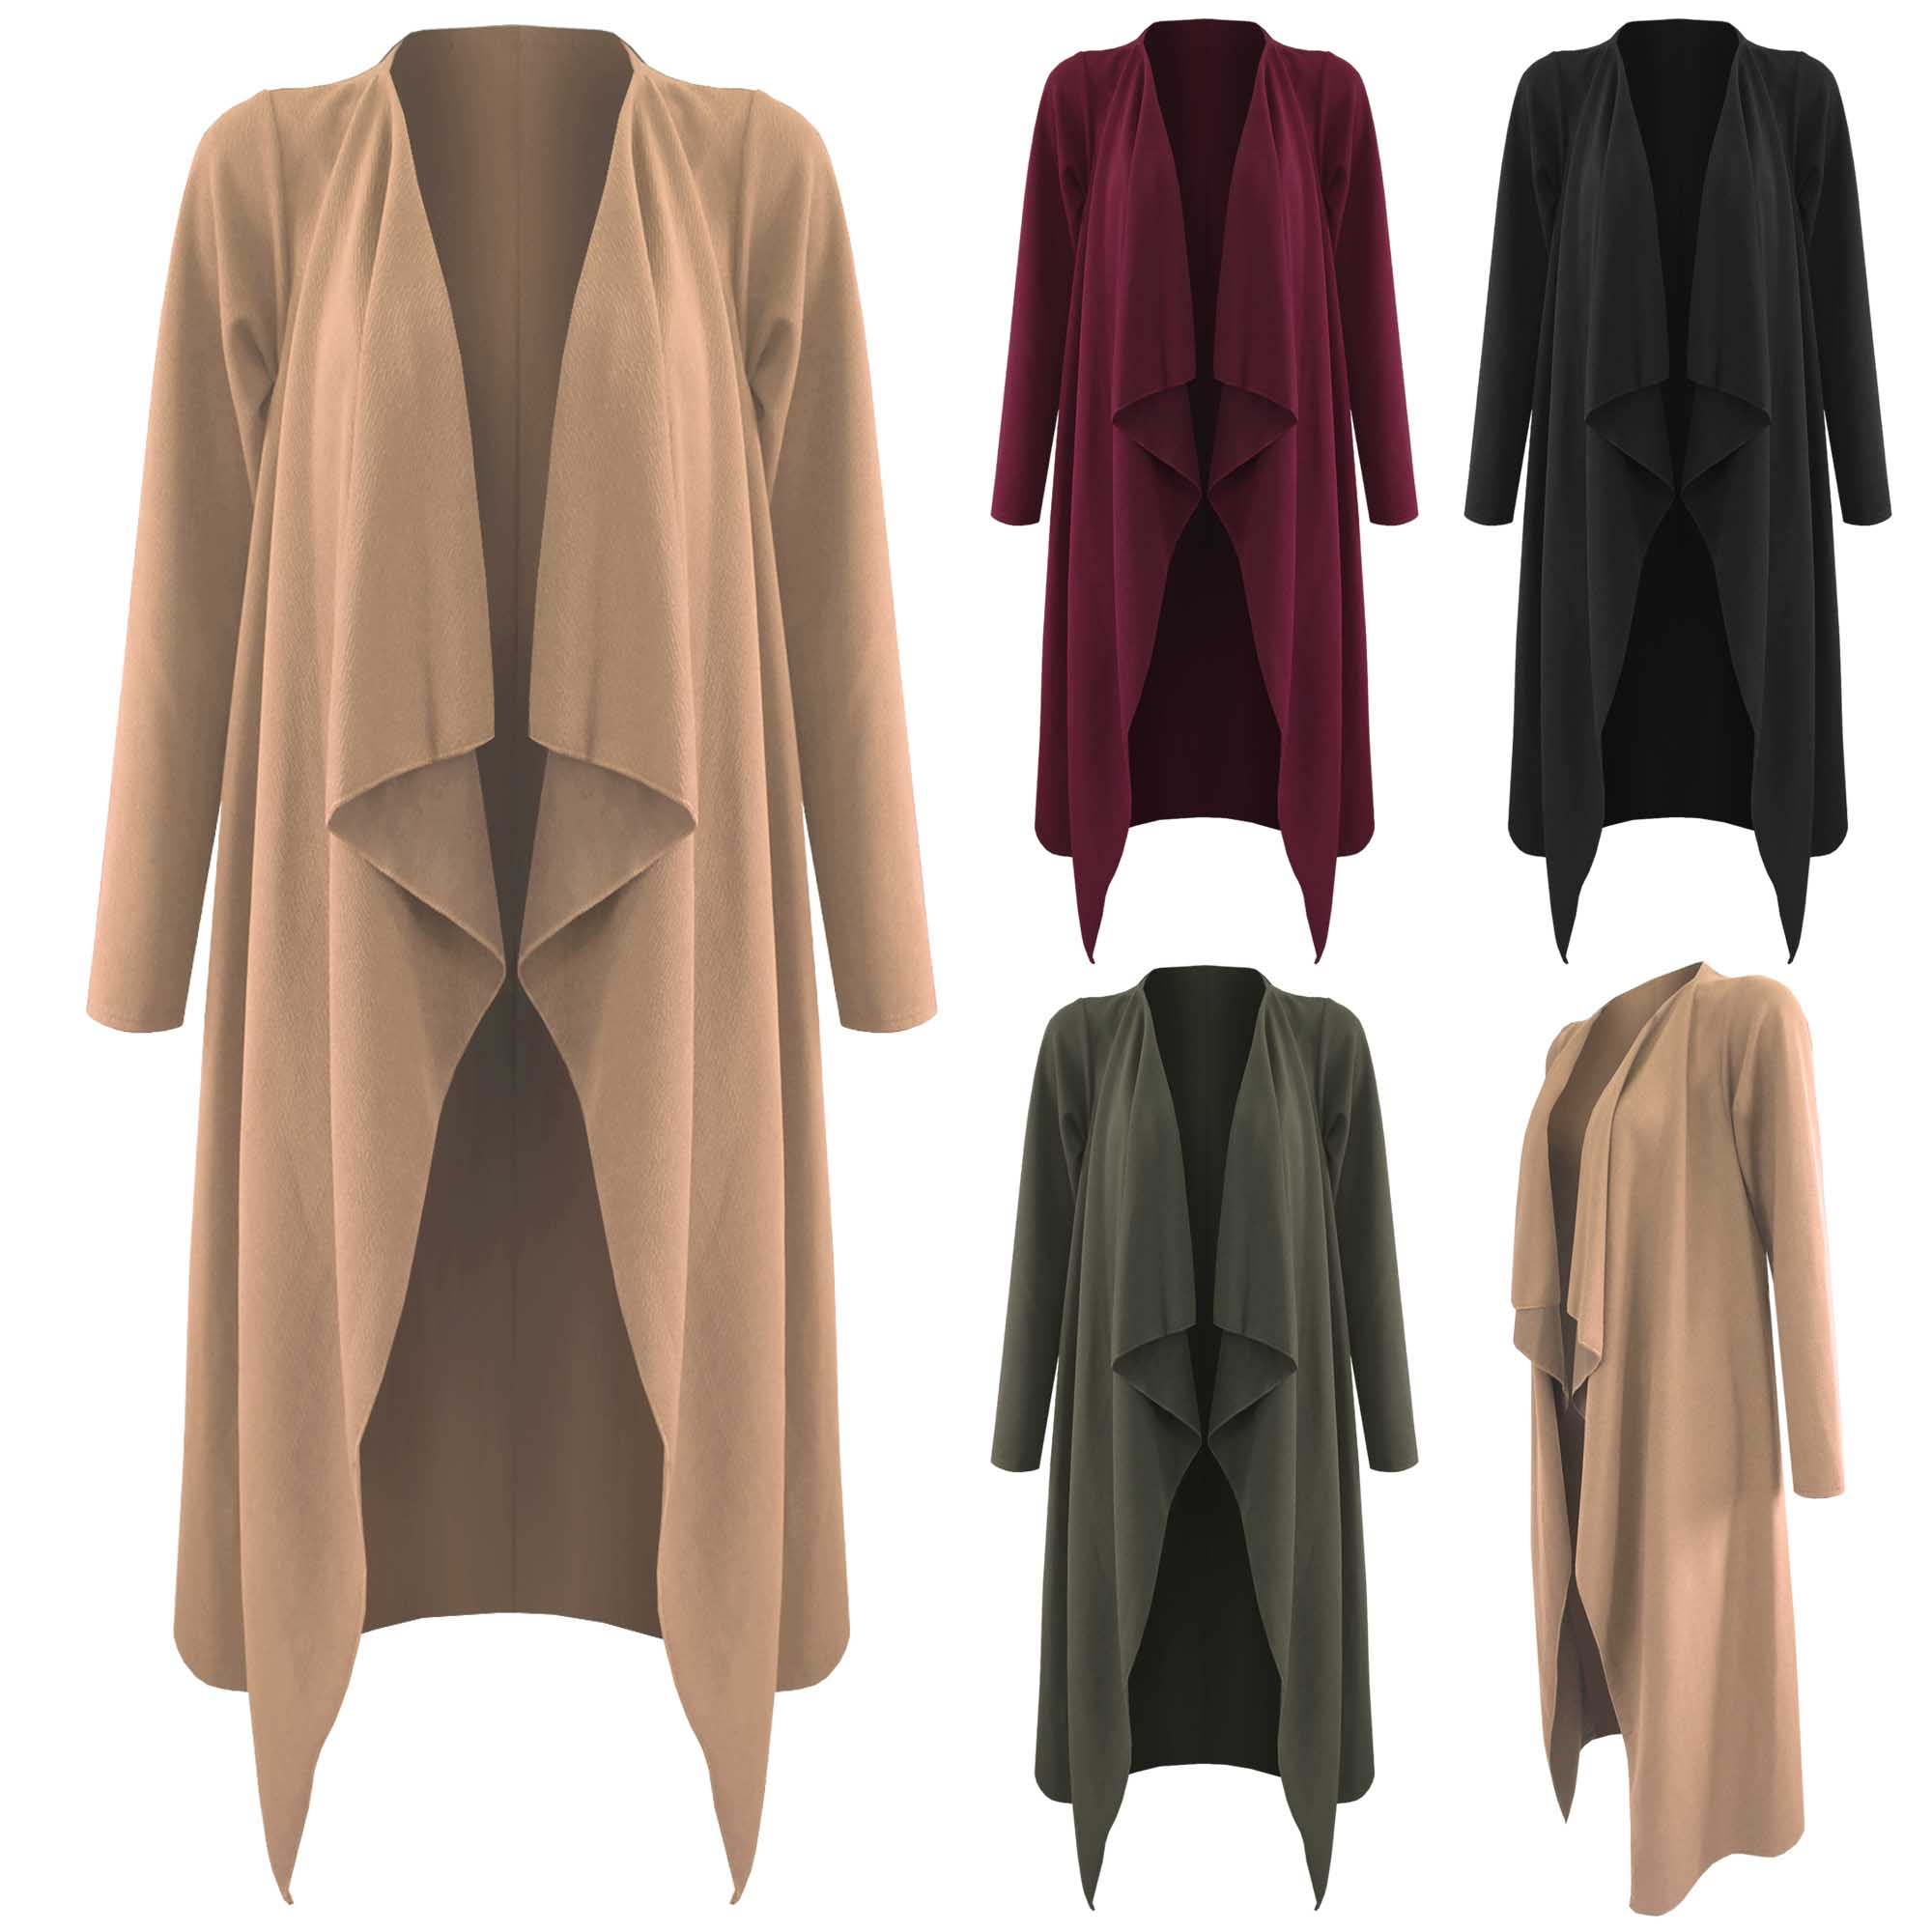 NEW LADIES OPEN WATERFALL JACKET WOMENS LONG LENGTH SLEEVED COAT ...